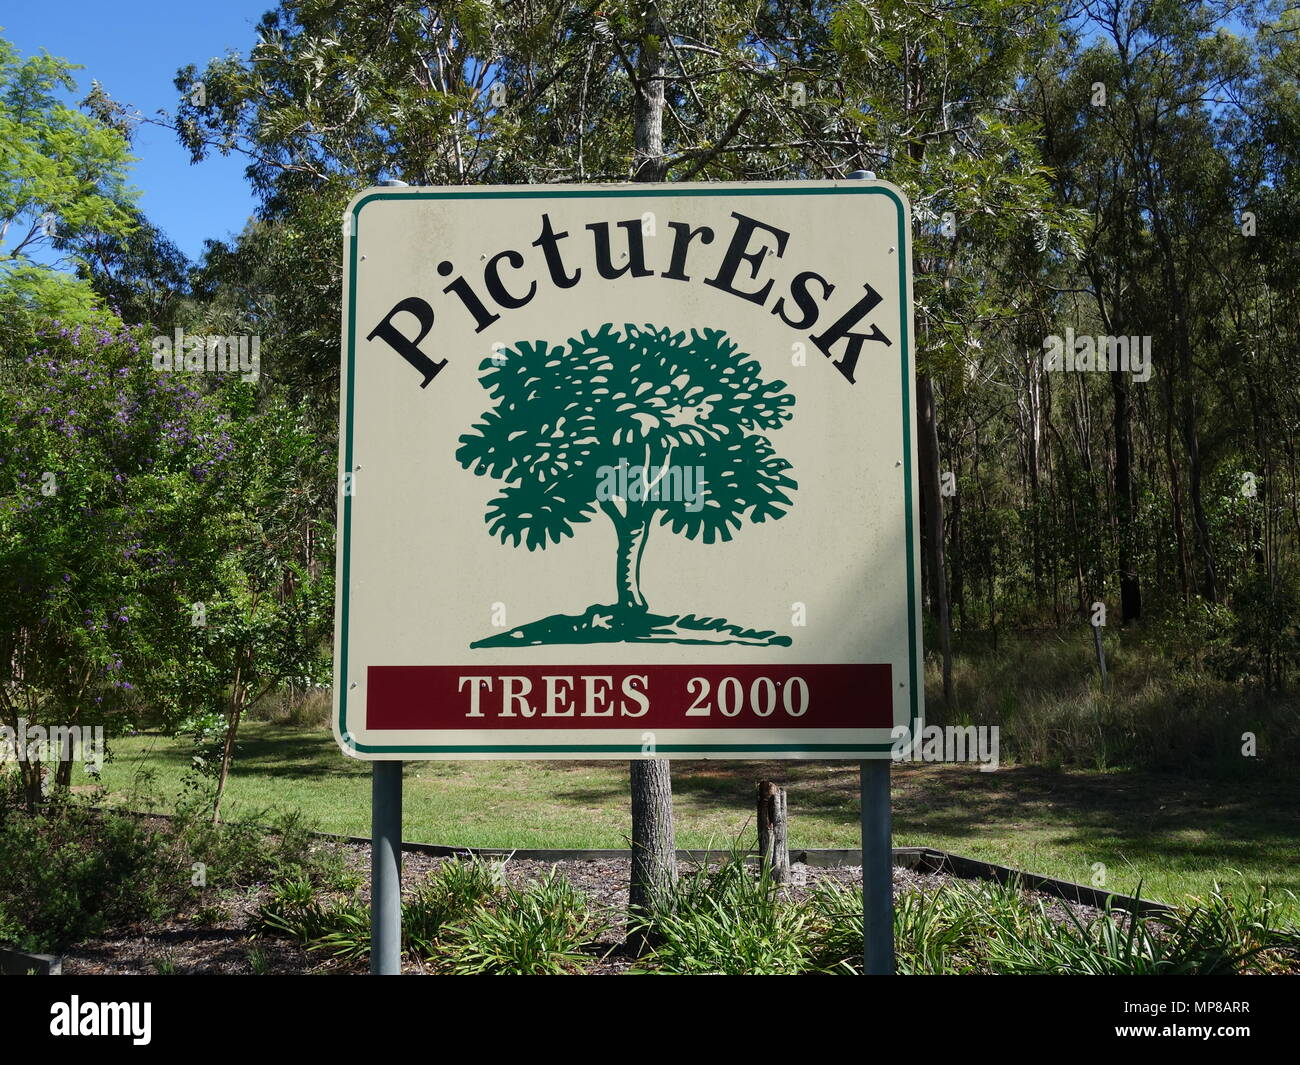 Esk, Queensland, Australia:  February 9, 2018:  The entry sign board into Esk using a play on words to call it PicturEsk. - Stock Image